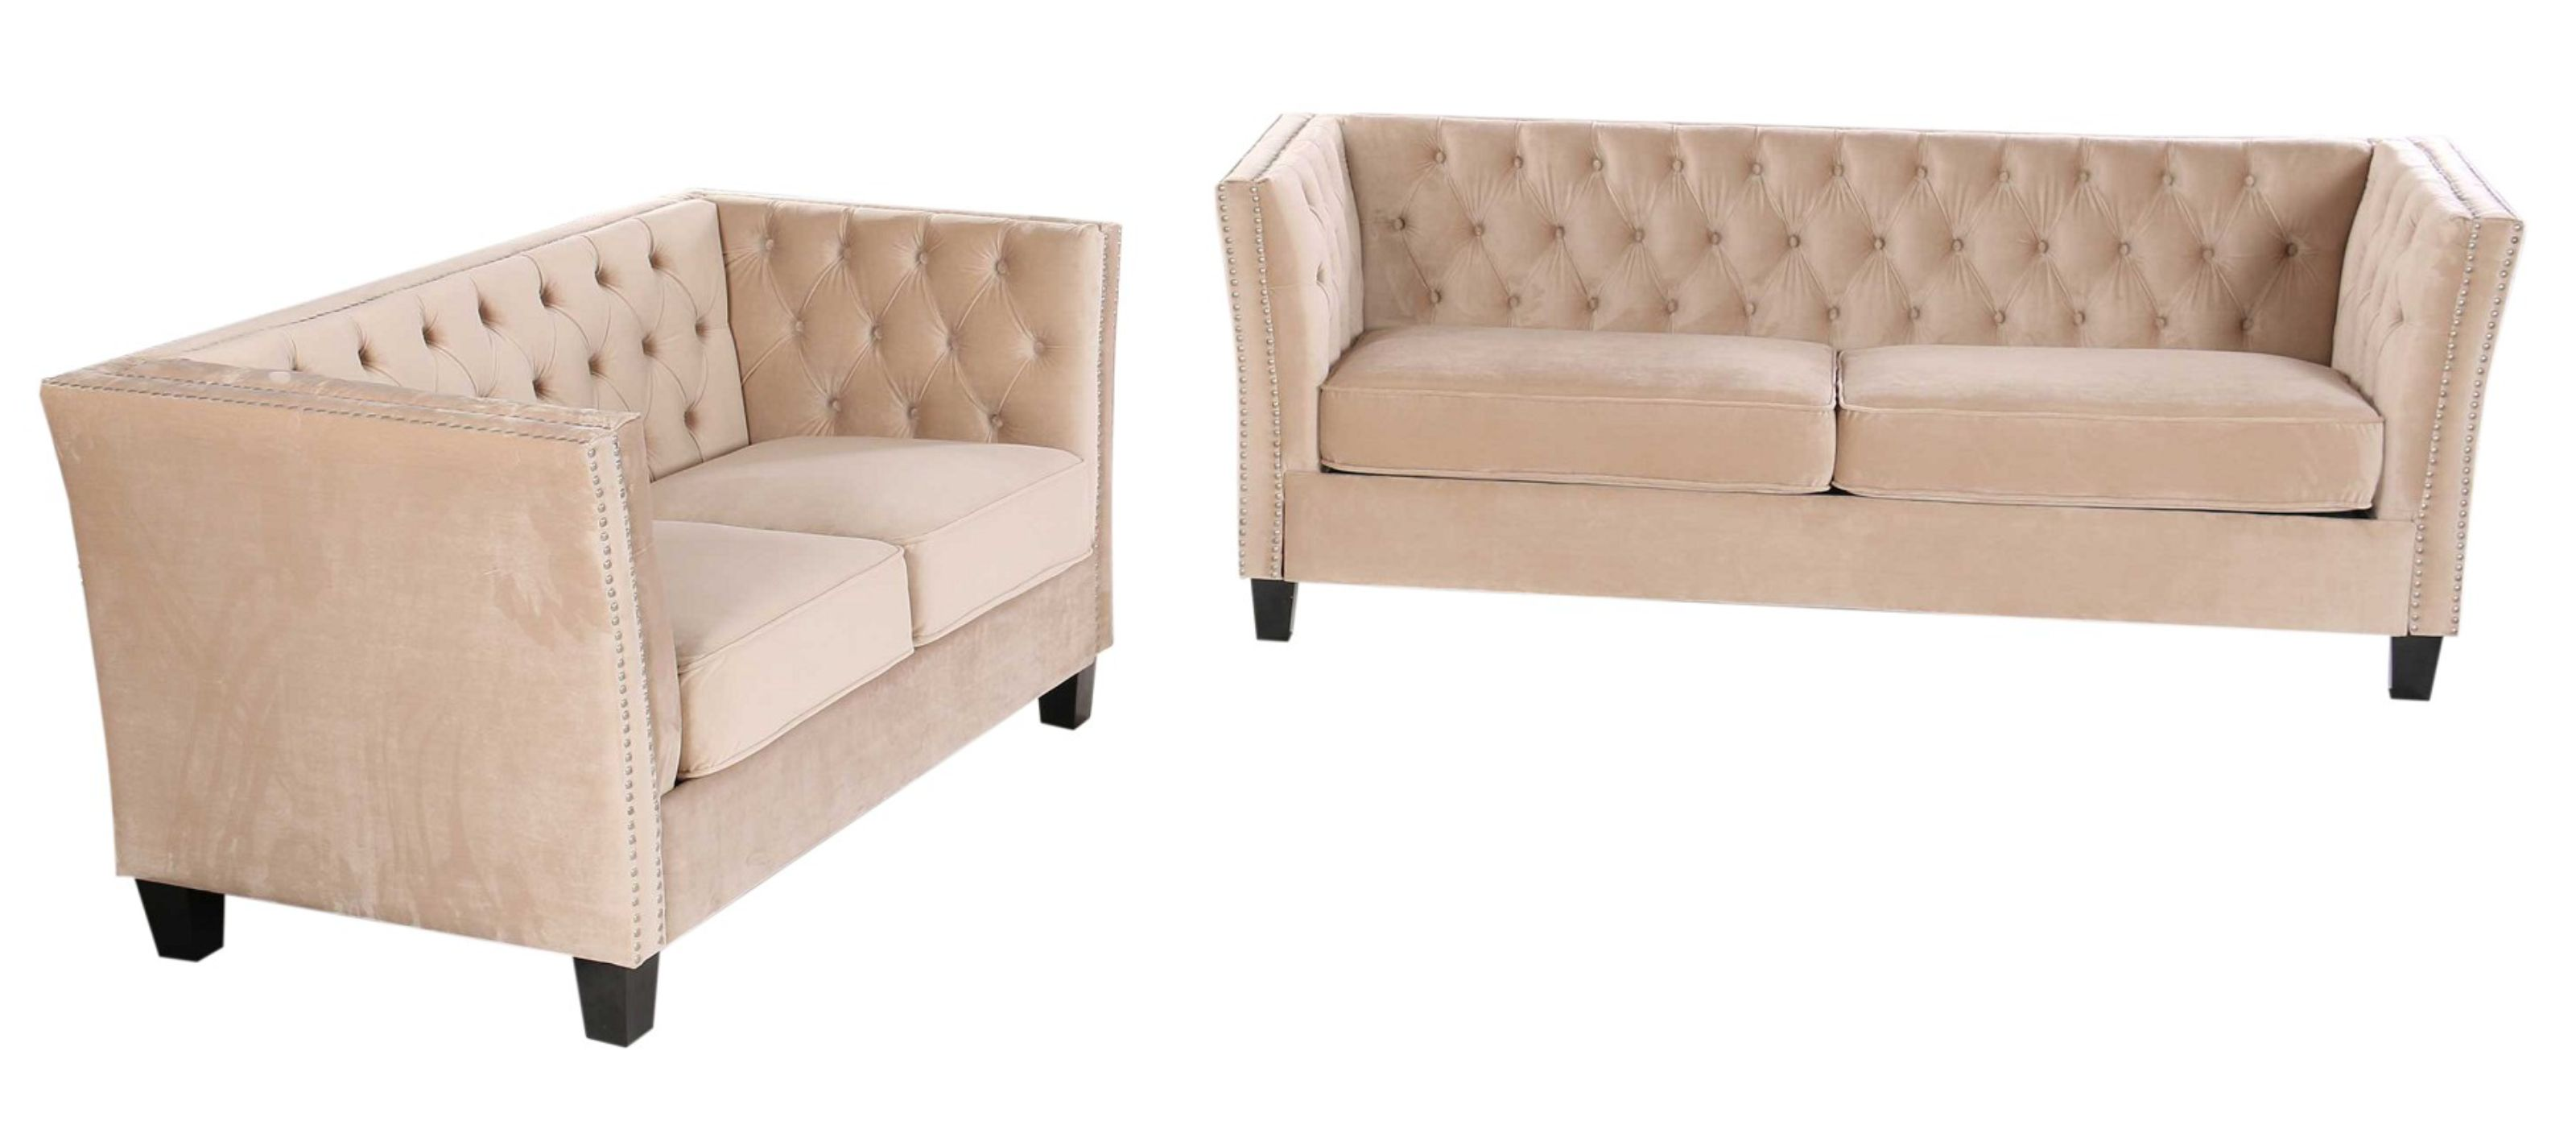 Chesterfield Suites Chesterfield Sofas Now In Flat Pack